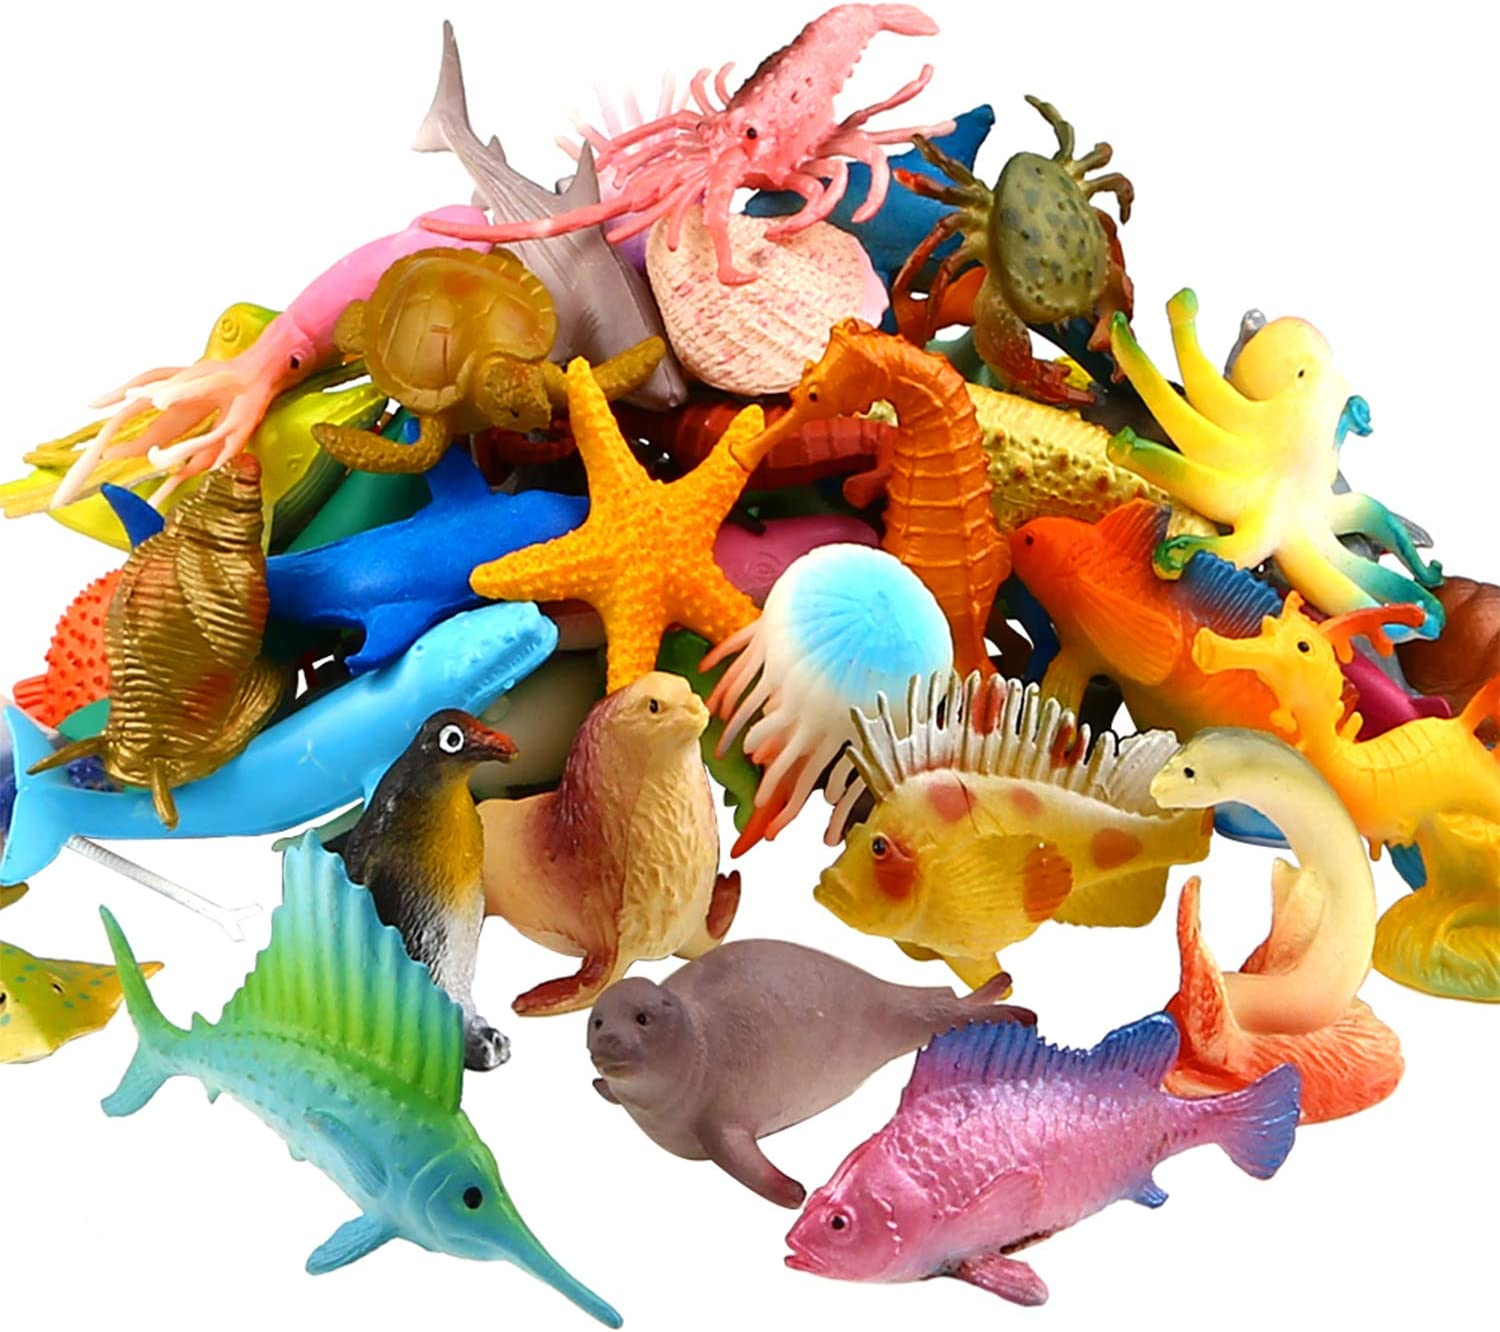 Ocean Sea Animal 52 Pack Assorted Free shipping on posting reviews Vinyl Save money Toy Mini Plastic